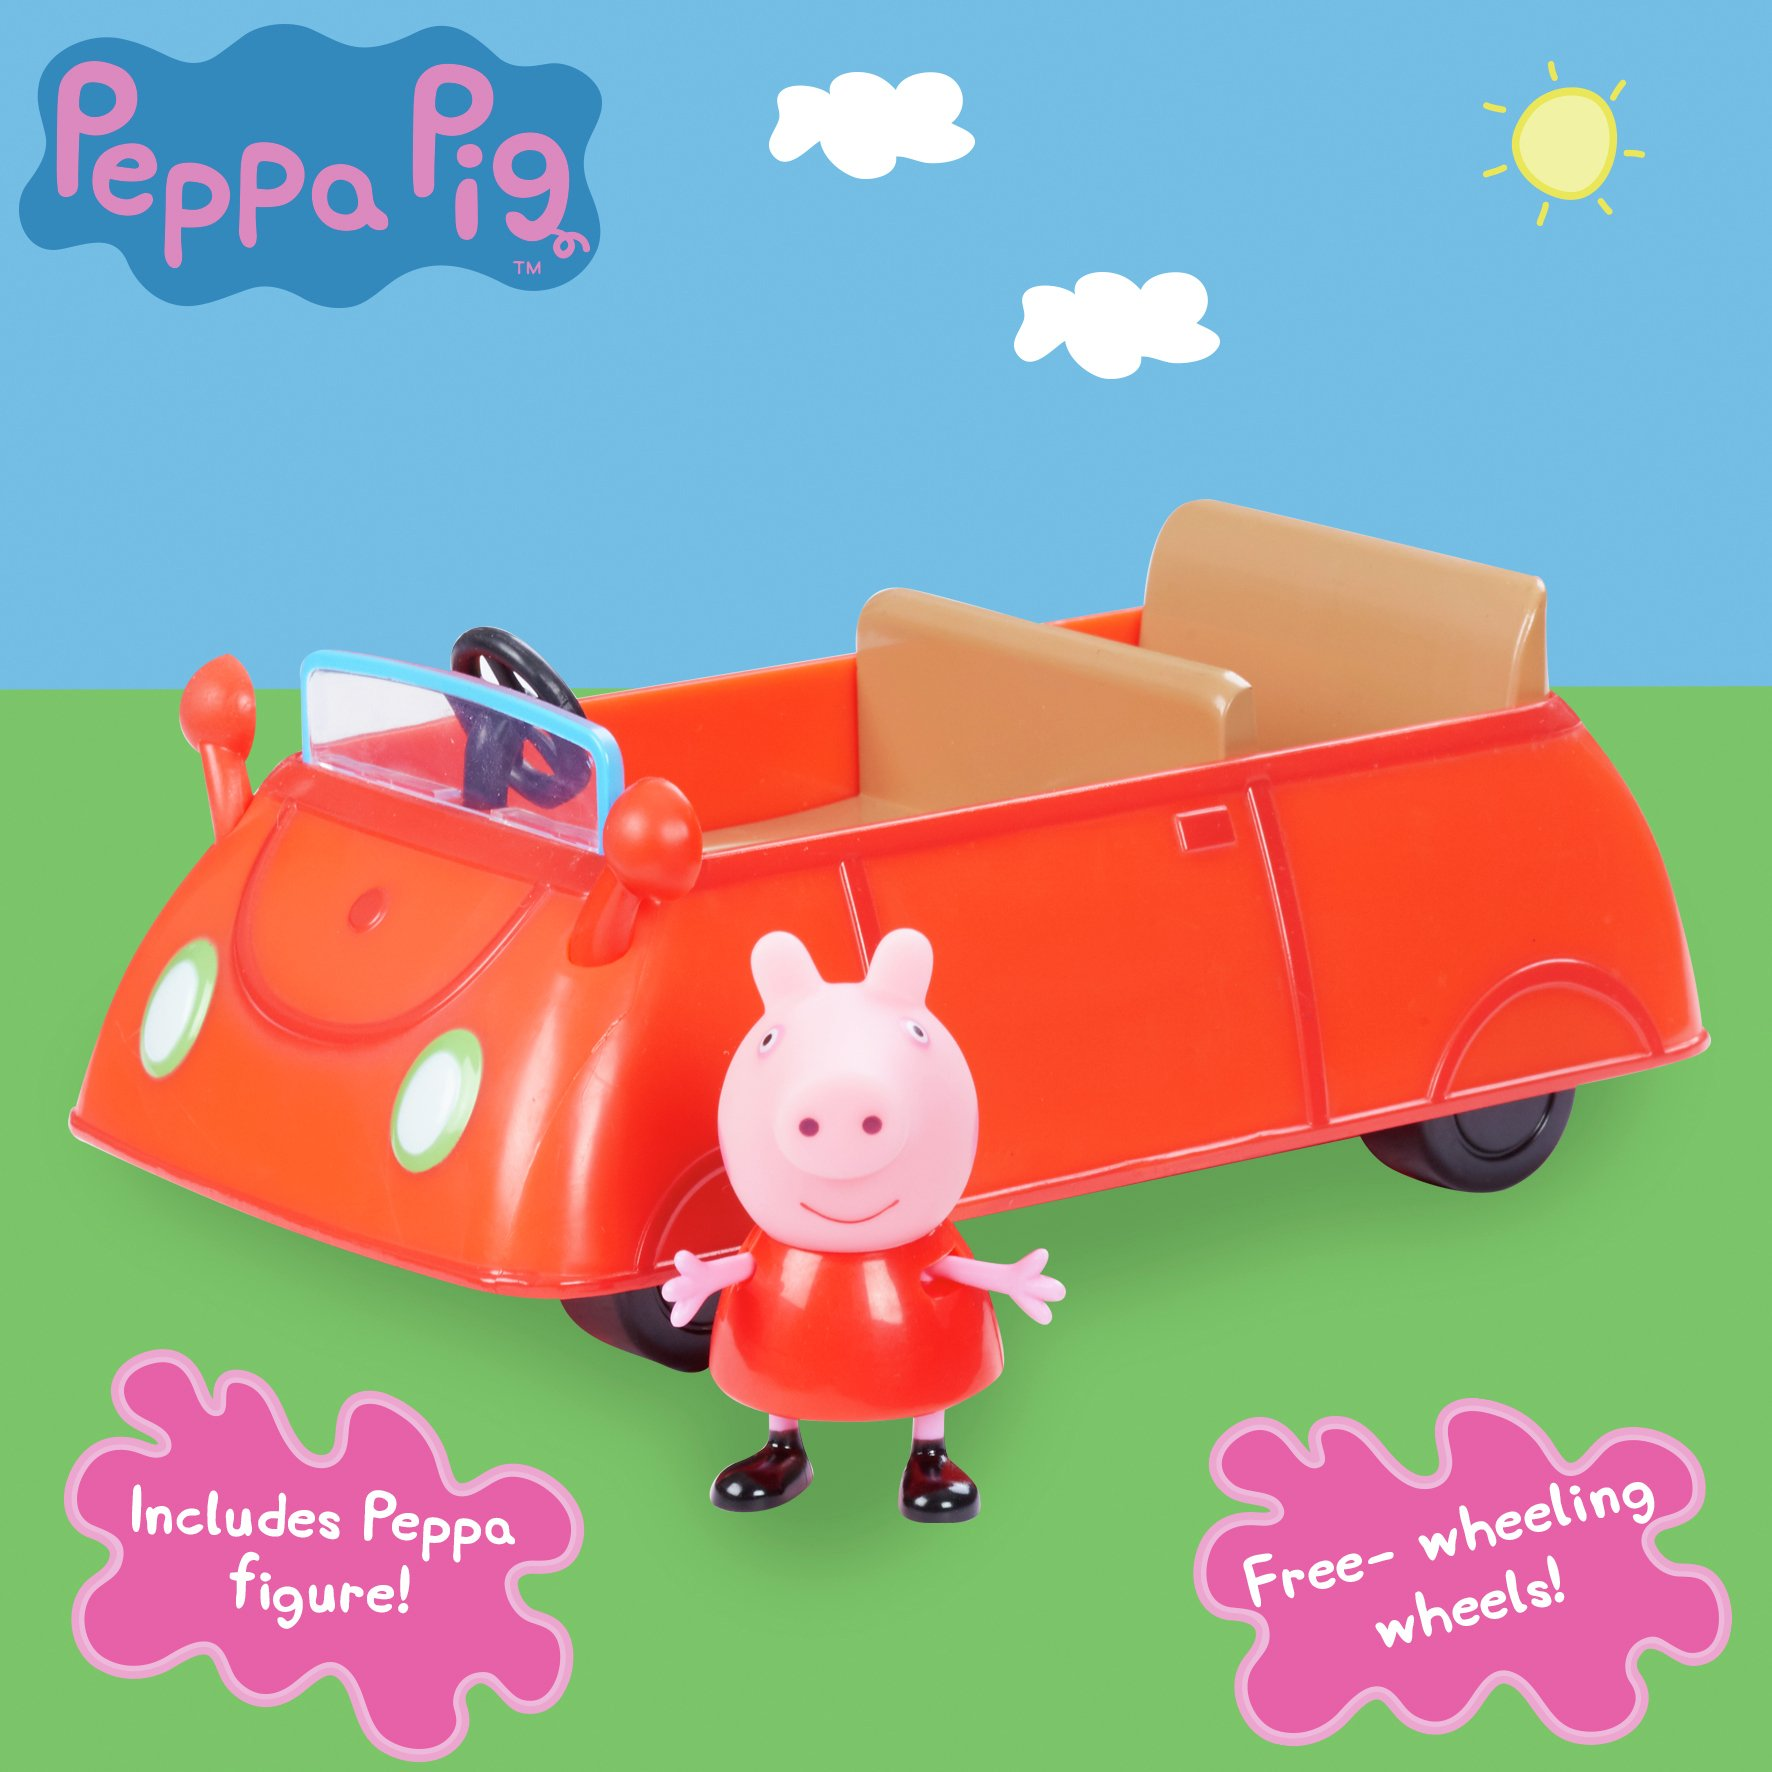 Peppa Pig Classic Car review